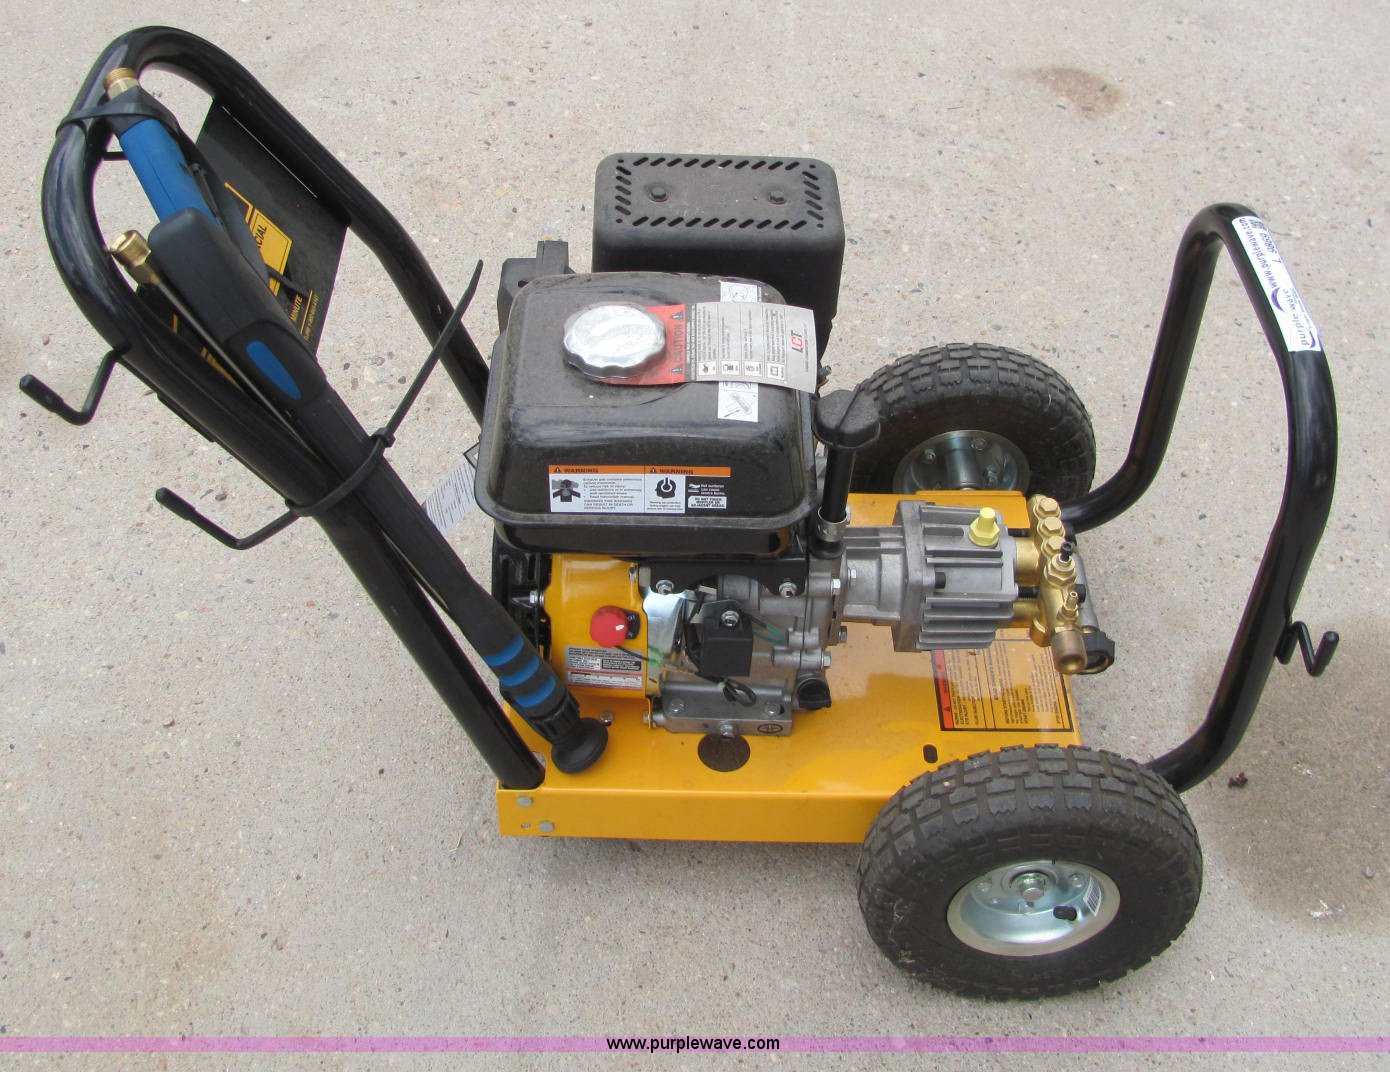 titan 2200 pressure washer manual open source user manual u2022 rh dramatic varieties com Titan Pressure Washer Parts Breakdown Titan Pressure Washer Carburetor